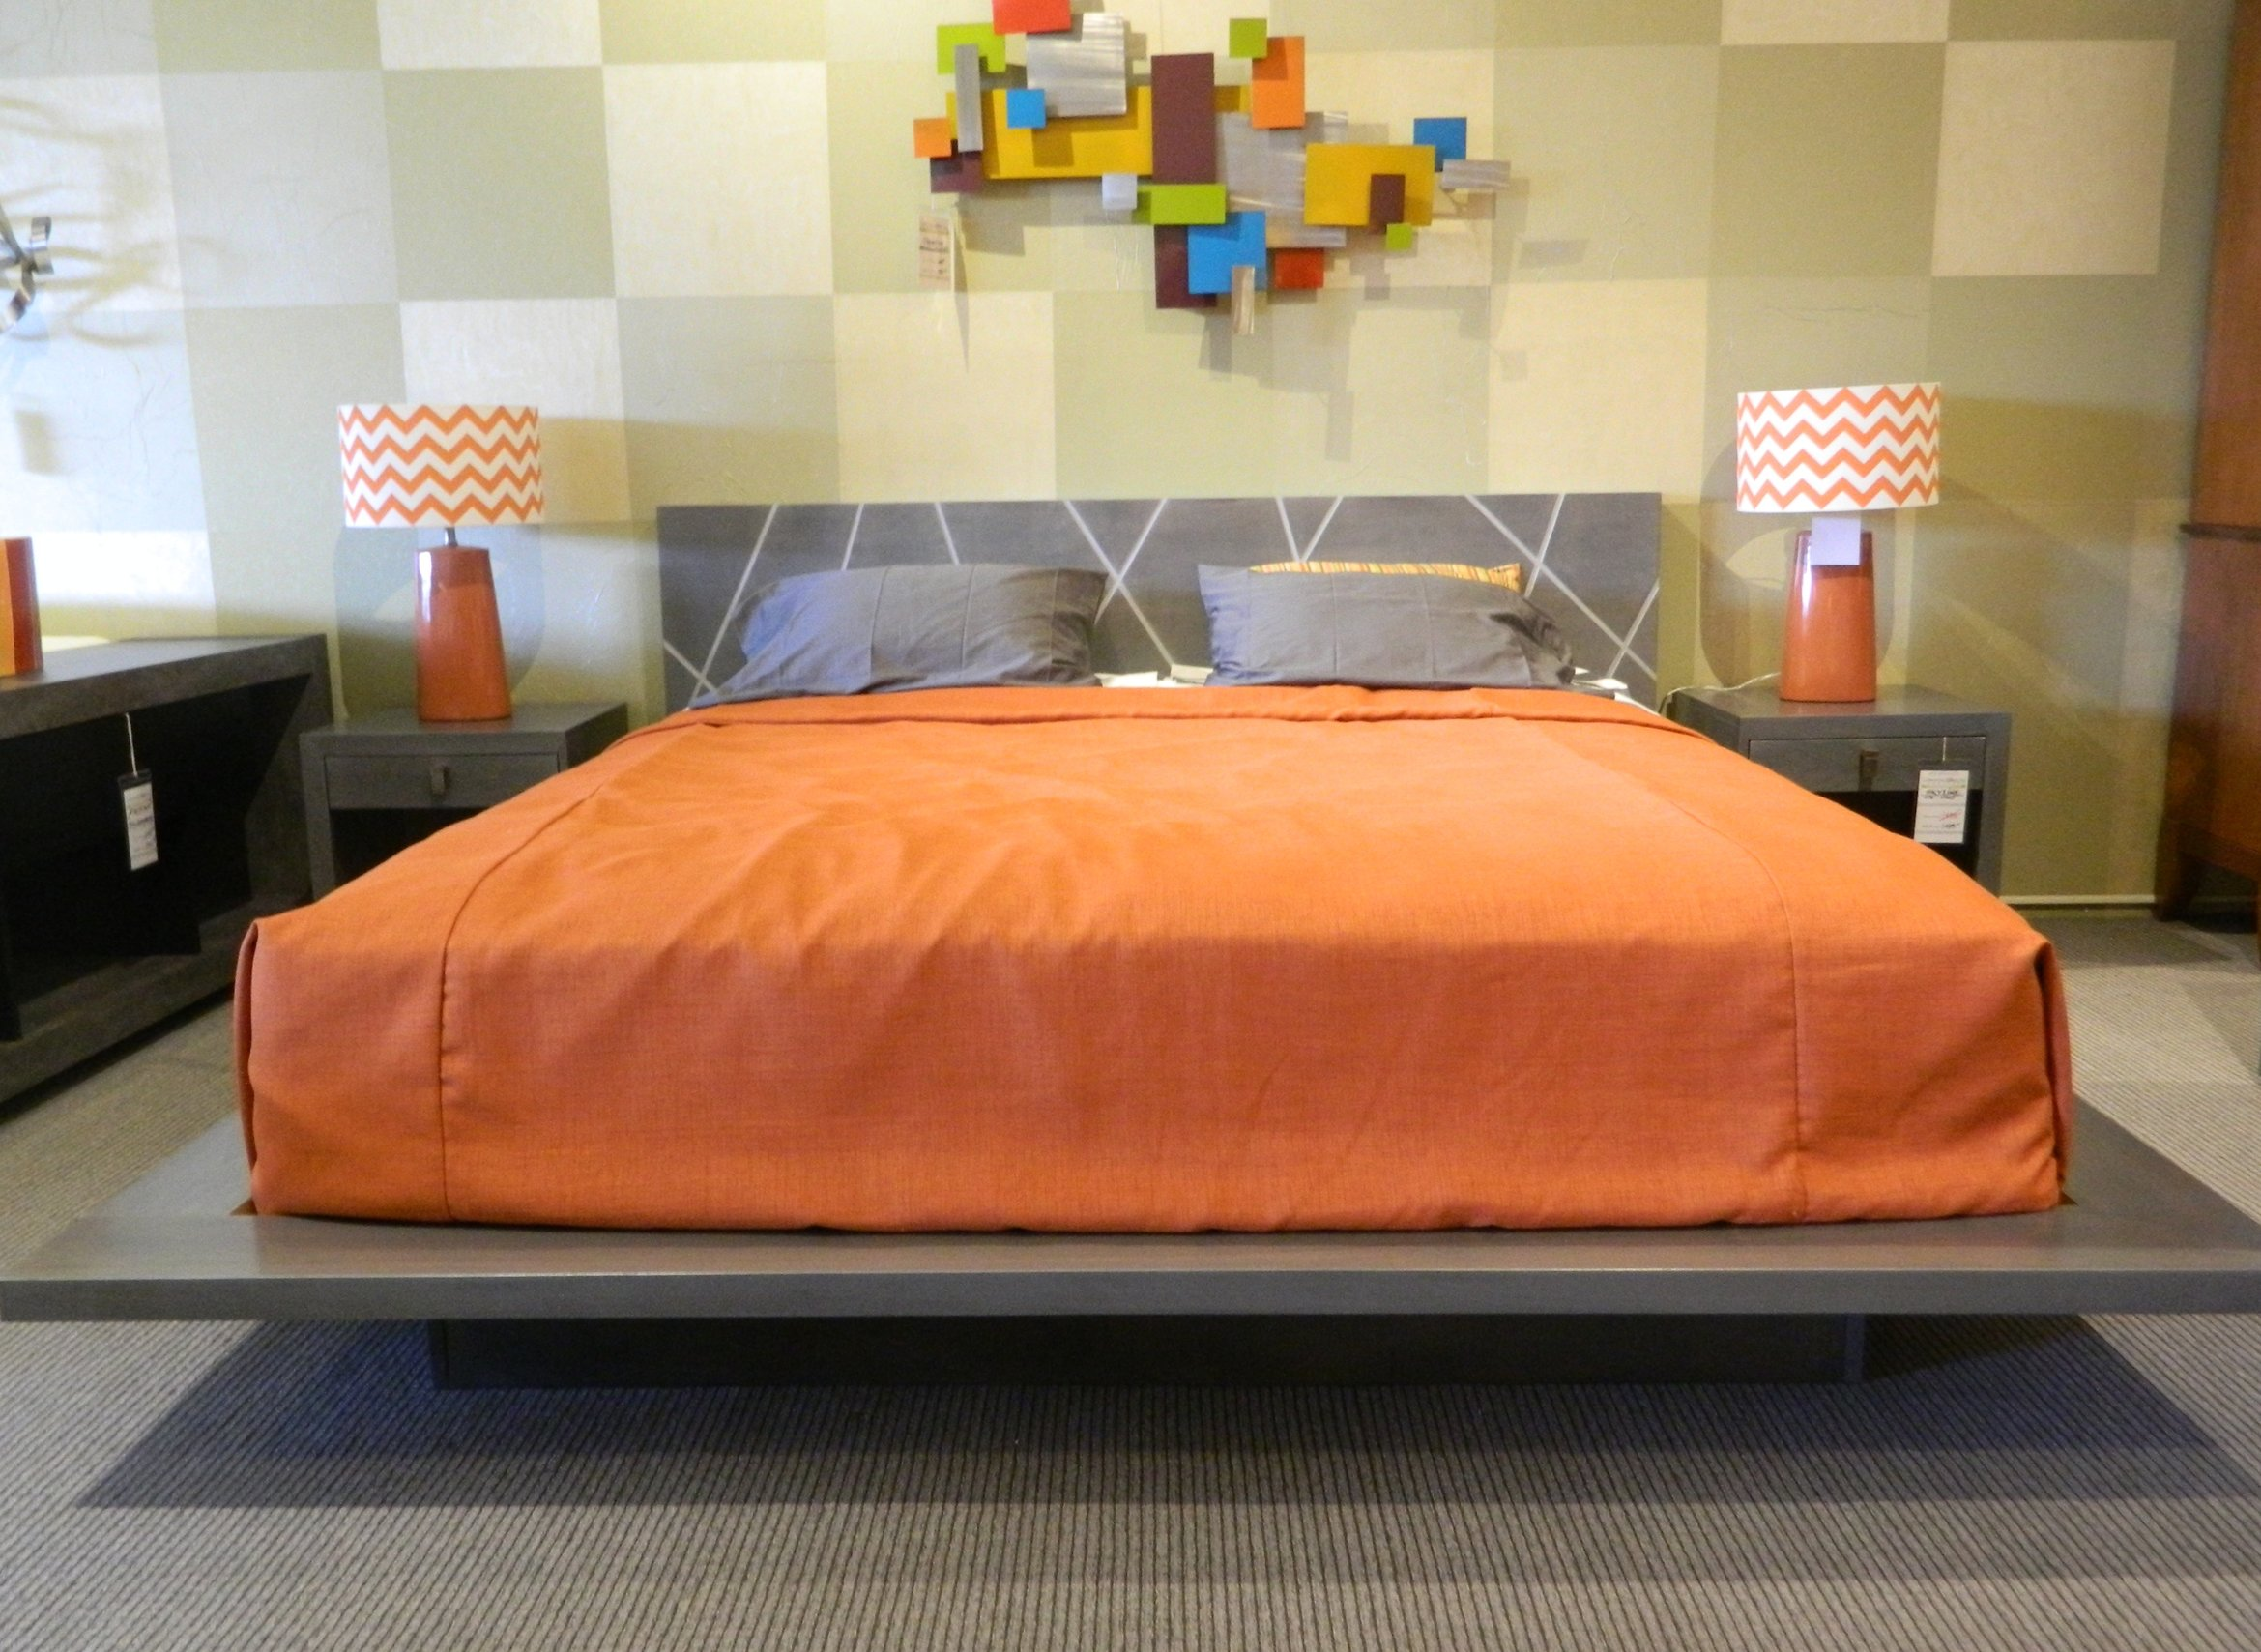 Custom Designed Beds